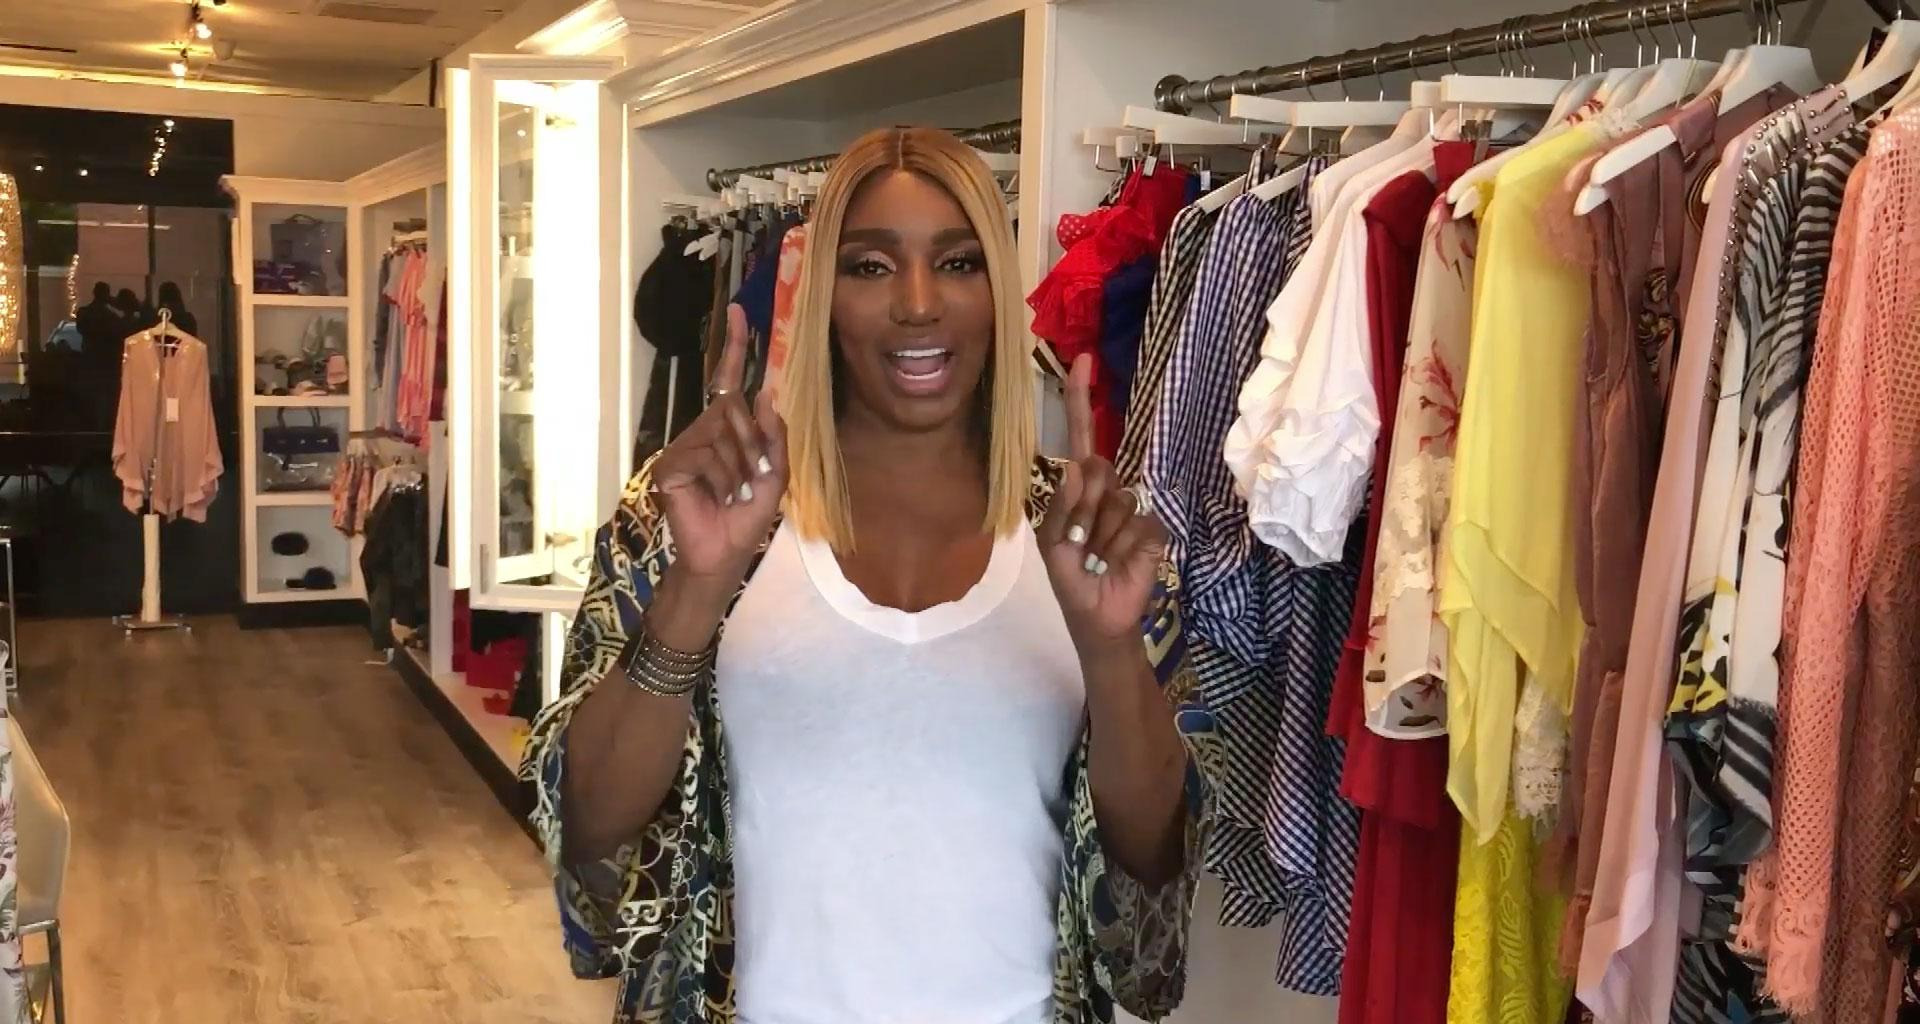 NeNe Leakes Continues To Support Her Fans Who Are Doing The 'Hunni' Challenge